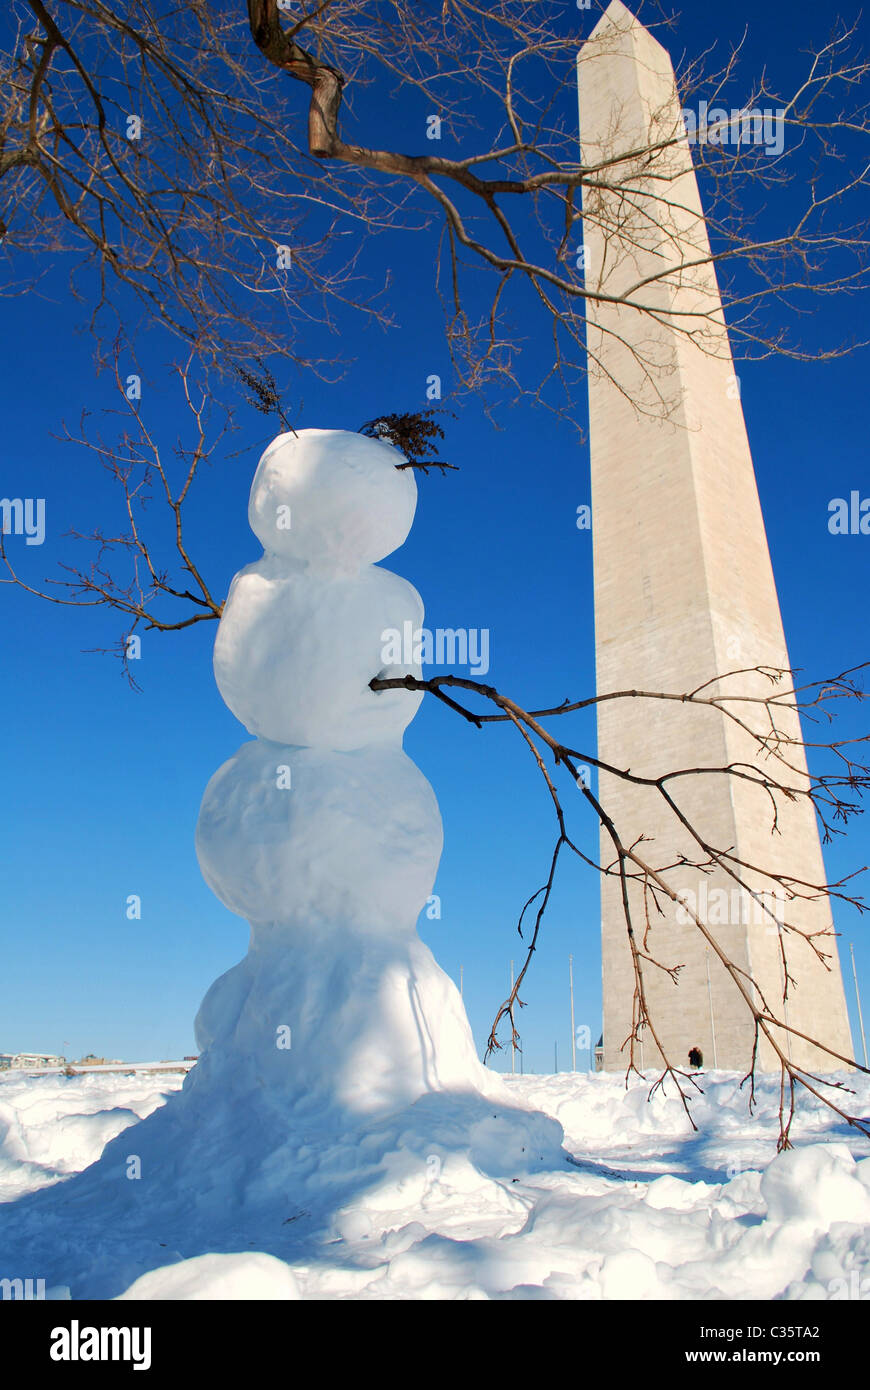 A snowman is on the National Mall near the Washington Monument after a near-record snowfall in the Washington DC - Stock Image